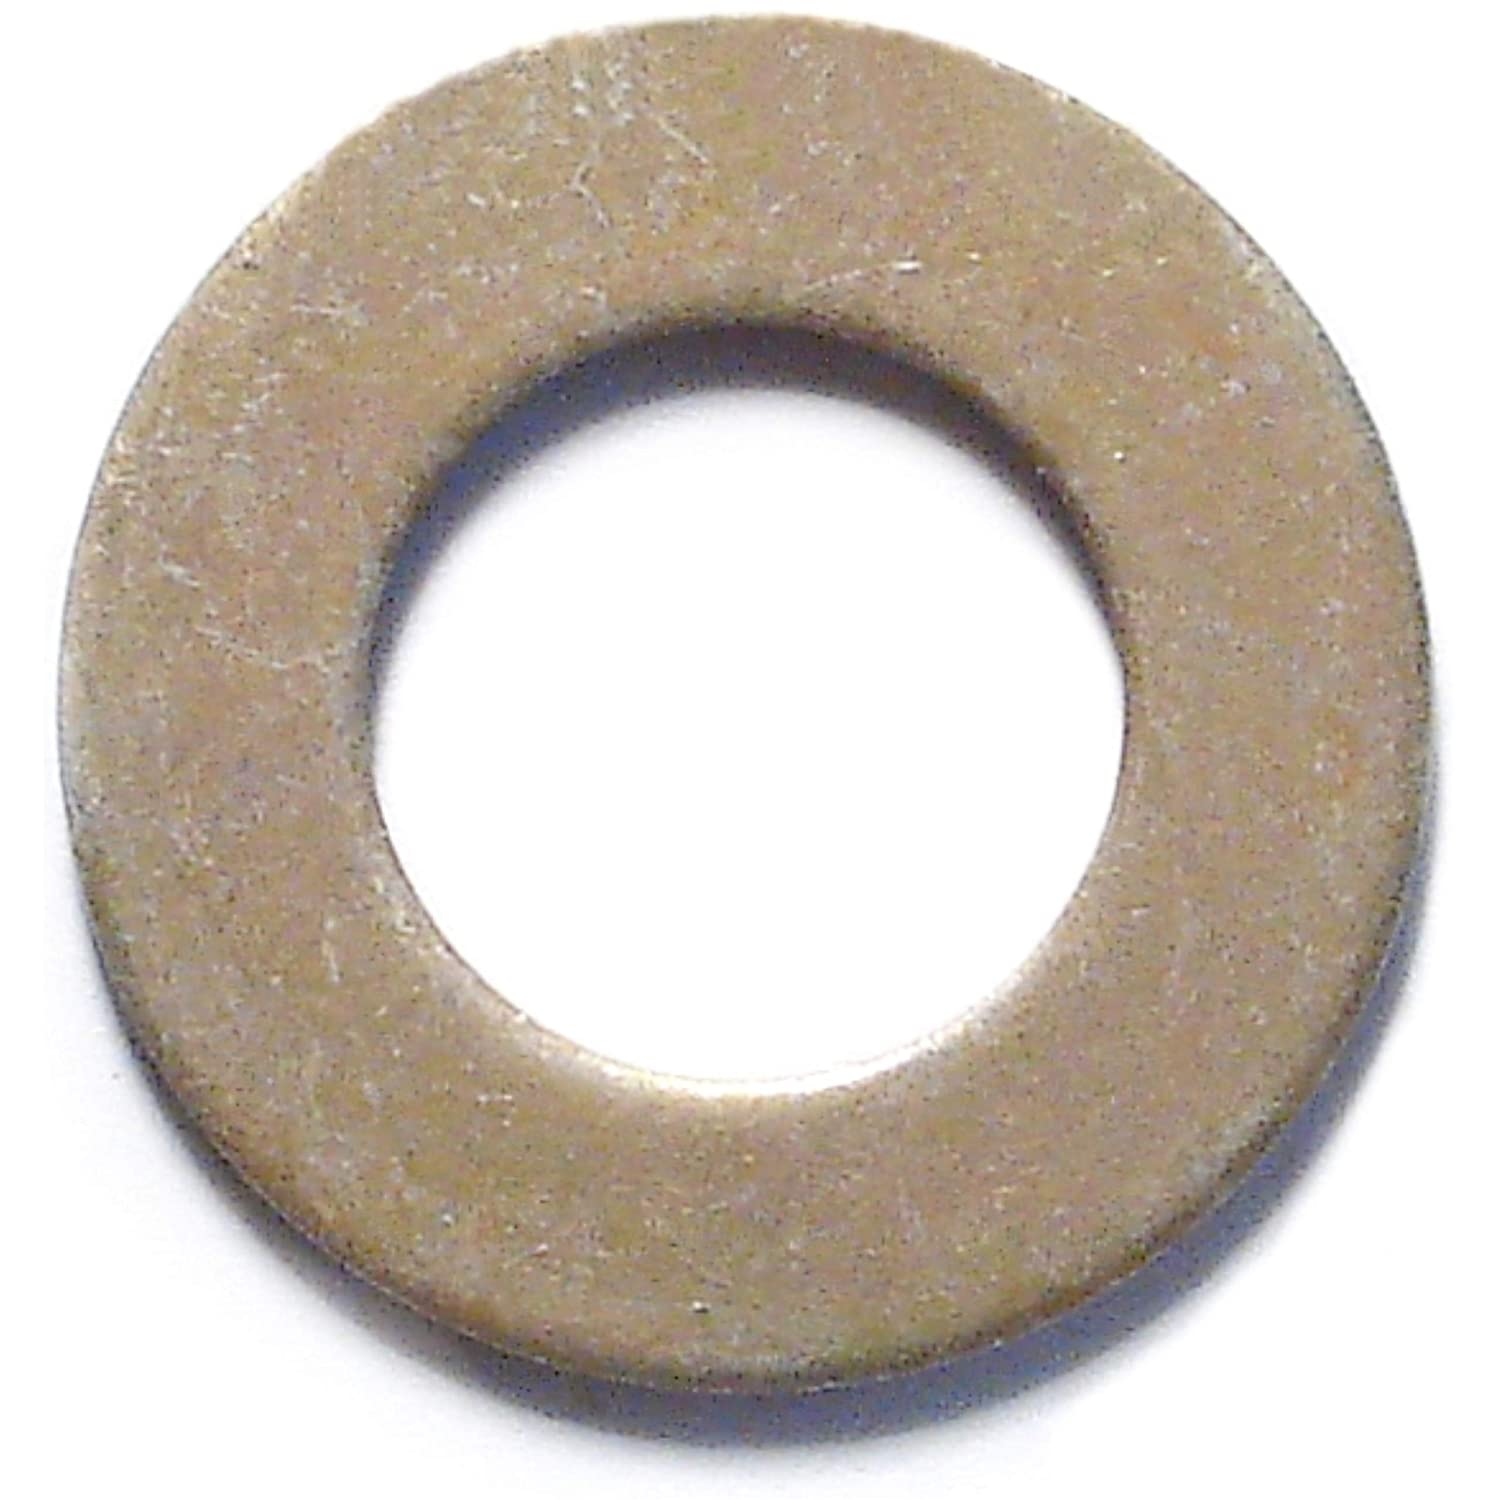 5//8 Piece-8 Midwest Fastener Corp Hard-to-Find Fastener 014973228781 AN Washers